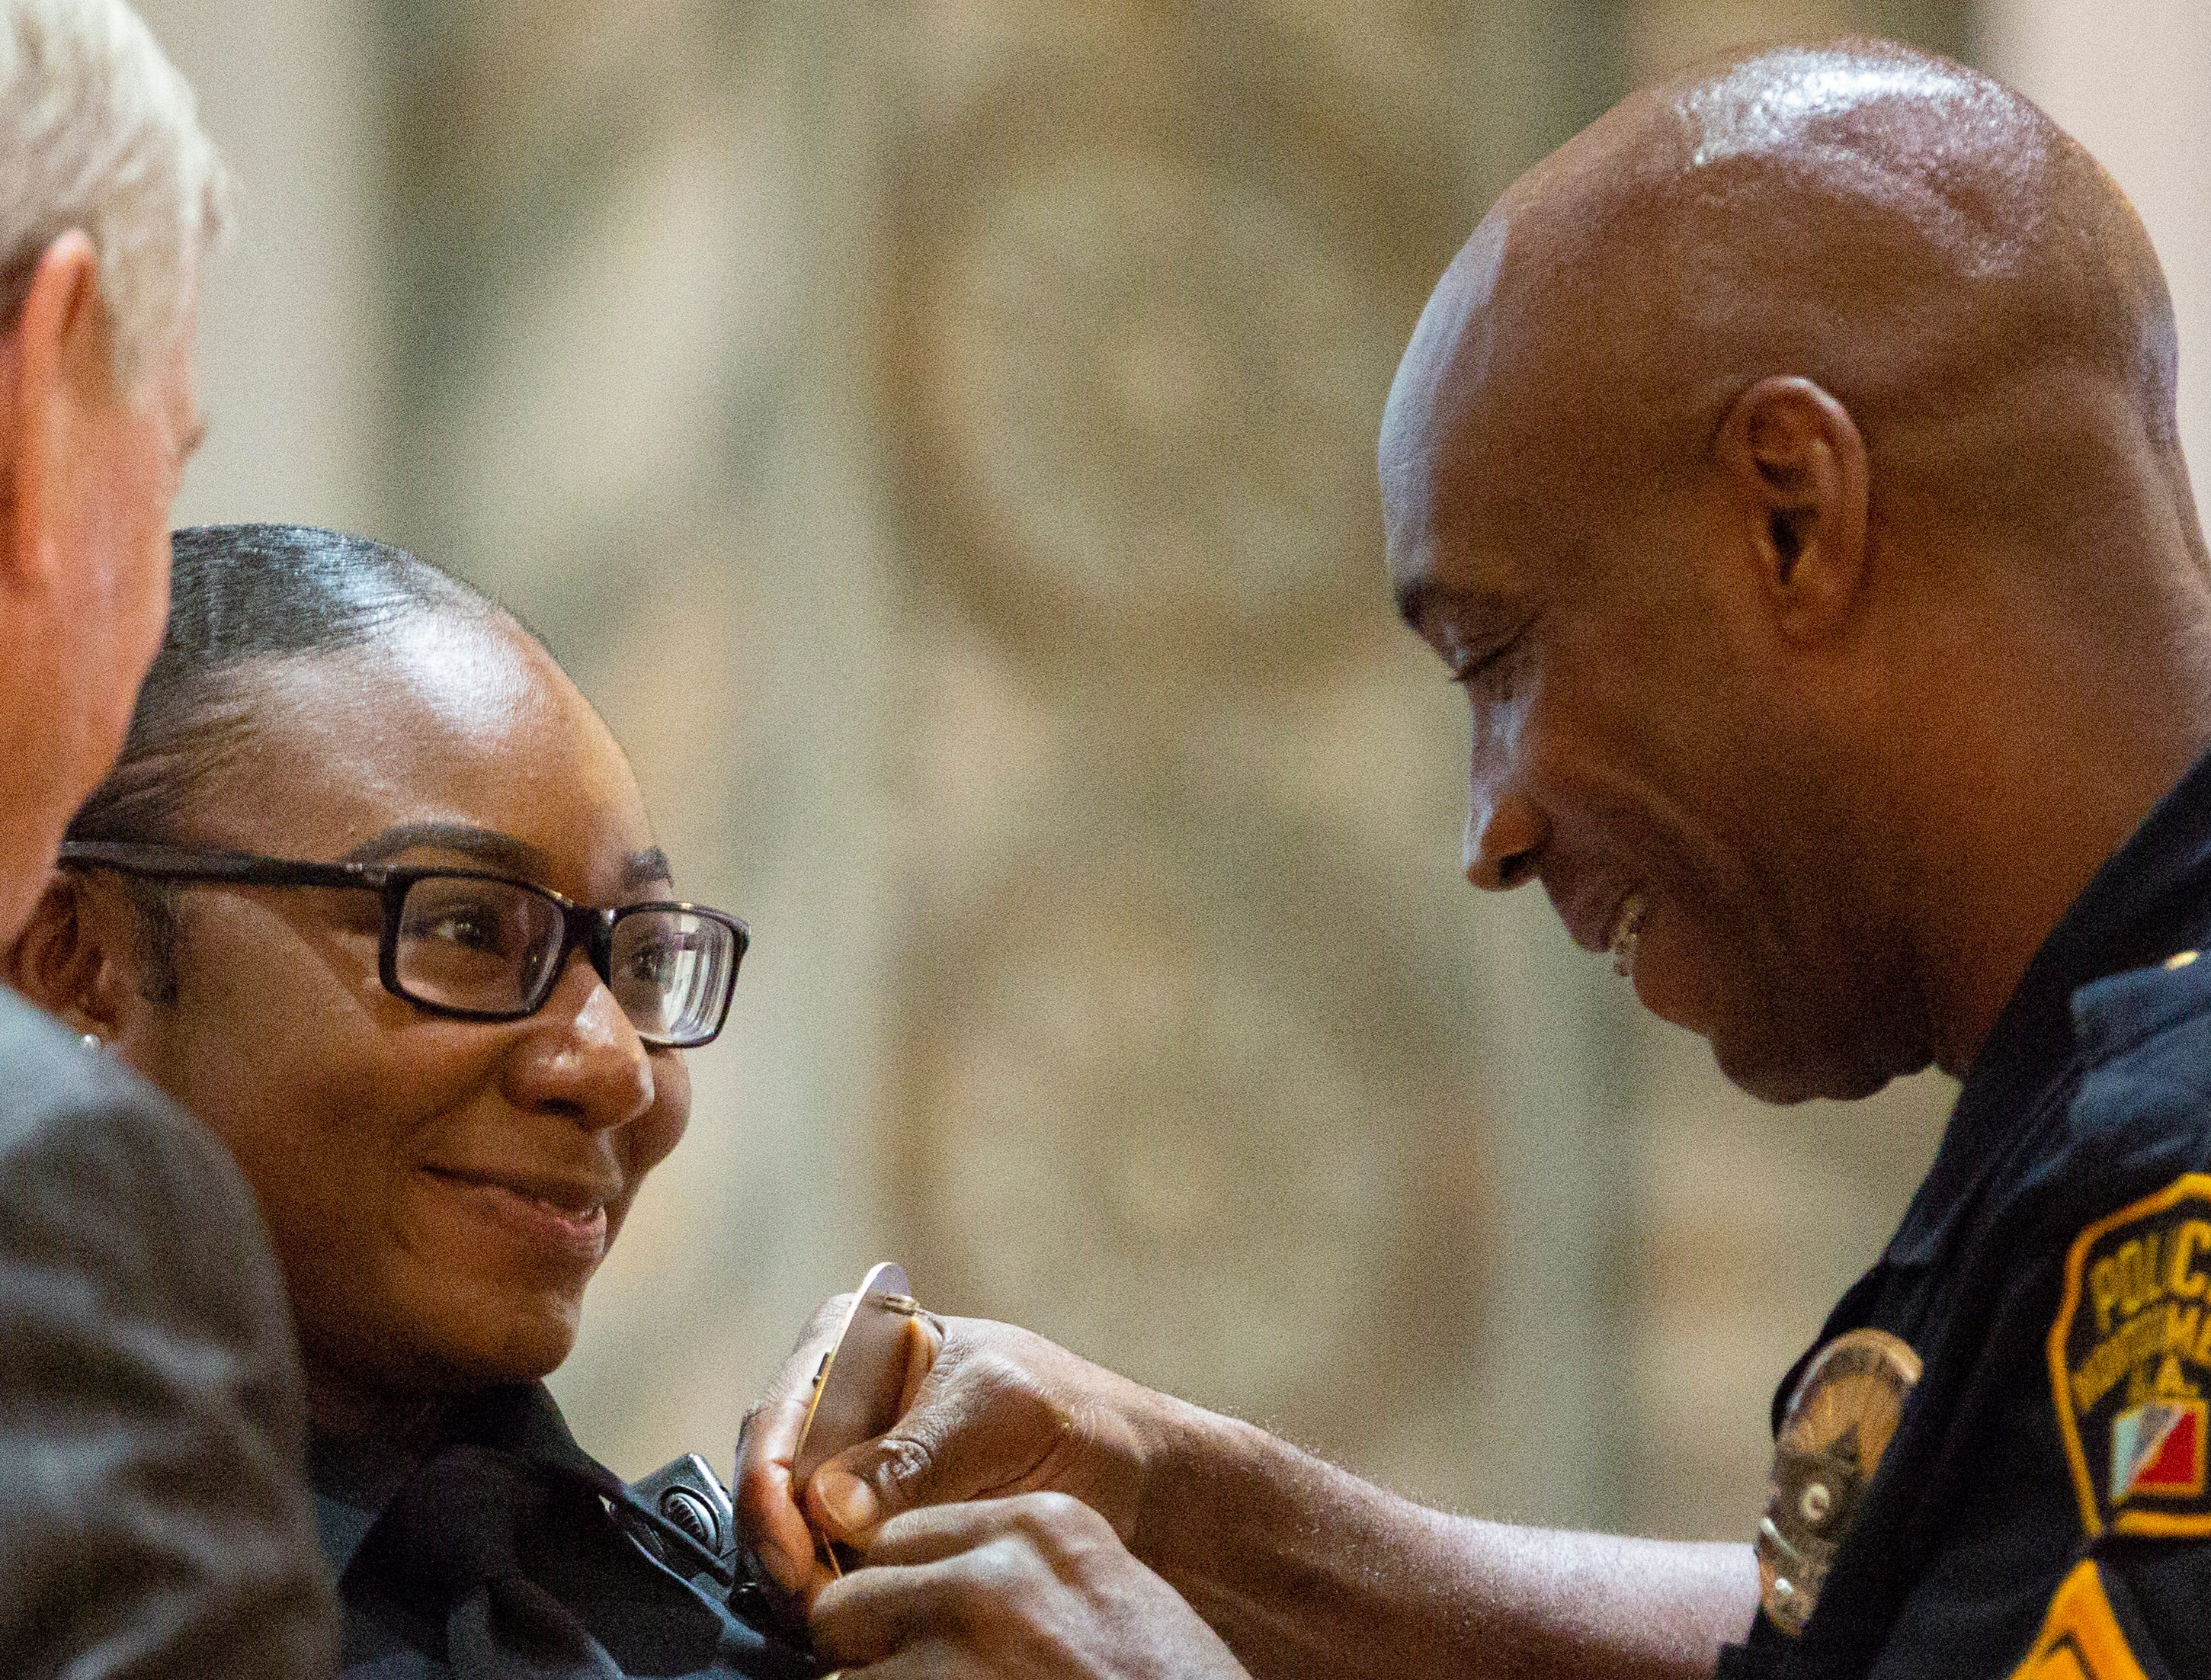 Montgomery police officer Kelsey Mackey smiles with pride as her badge is pinned on her.